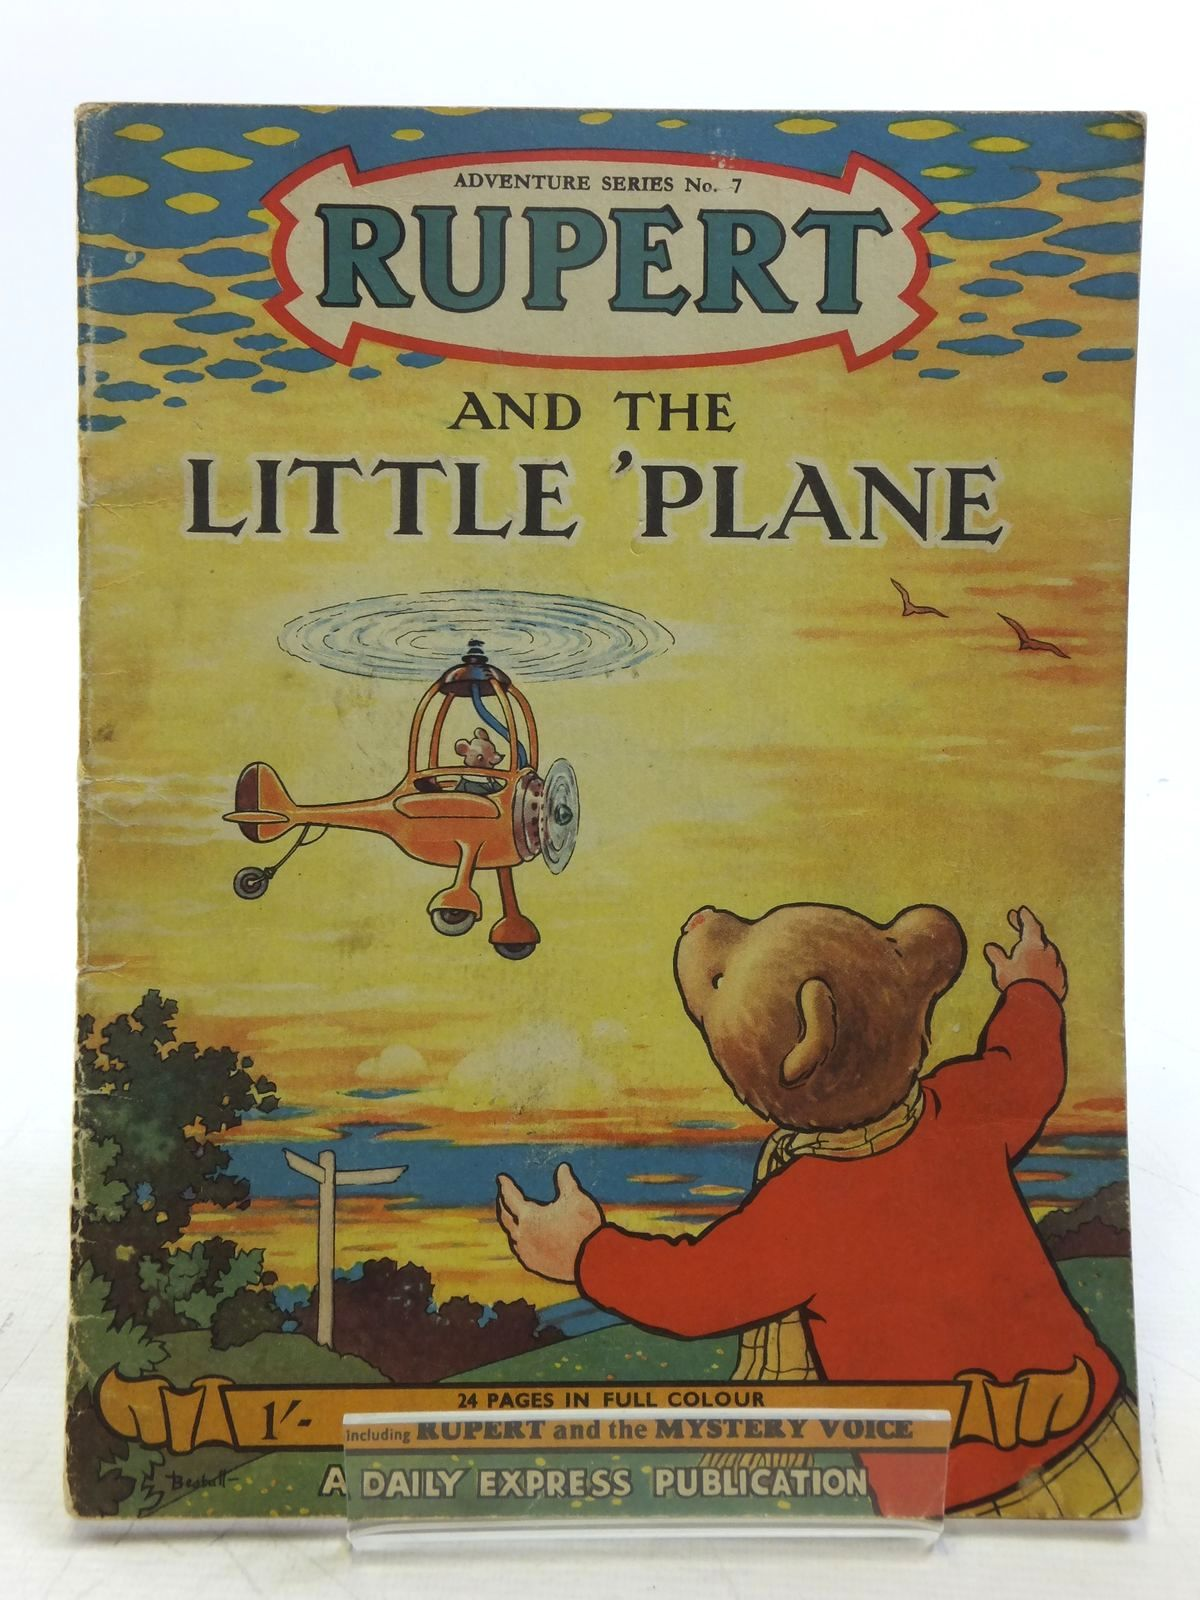 Photo of RUPERT ADVENTURE SERIES No. 7 - RUPERT AND THE LITTLE PLANE written by Bestall, Alfred illustrated by Bestall, Alfred published by Daily Express (STOCK CODE: 2119447)  for sale by Stella & Rose's Books